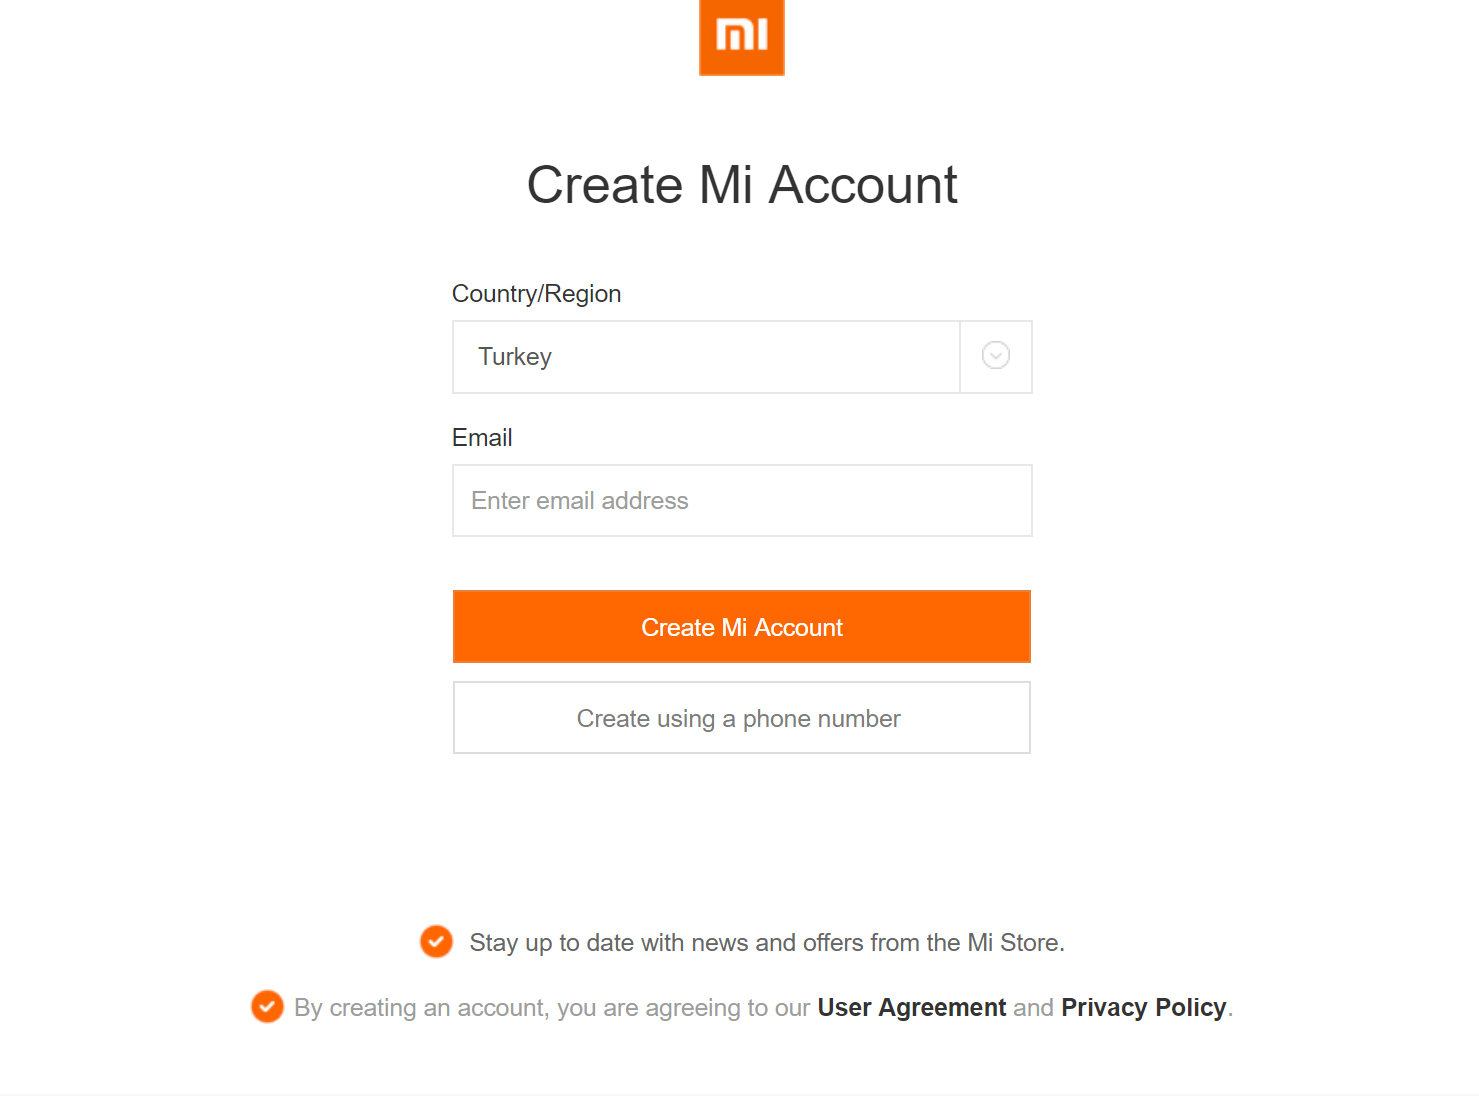 Stay up to date with news and offers from the Mi Store.